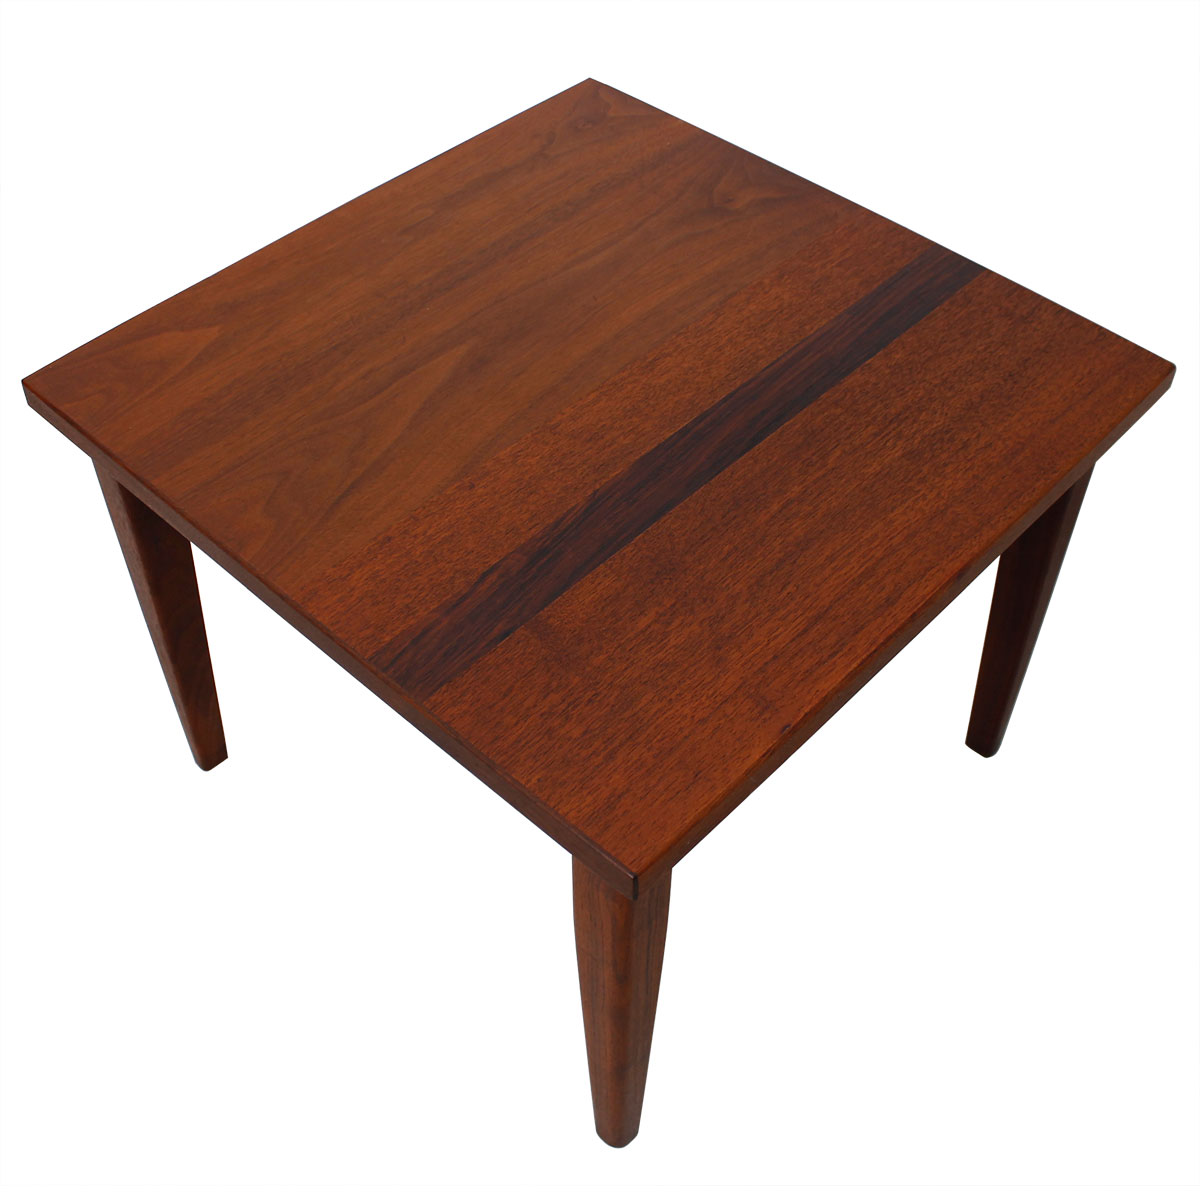 modern mobler rosewood accent table decorator mid century compact square teak walnut turquoise bedside lamps ikea garden shelf sitting room chairs nice design tea blue linens end